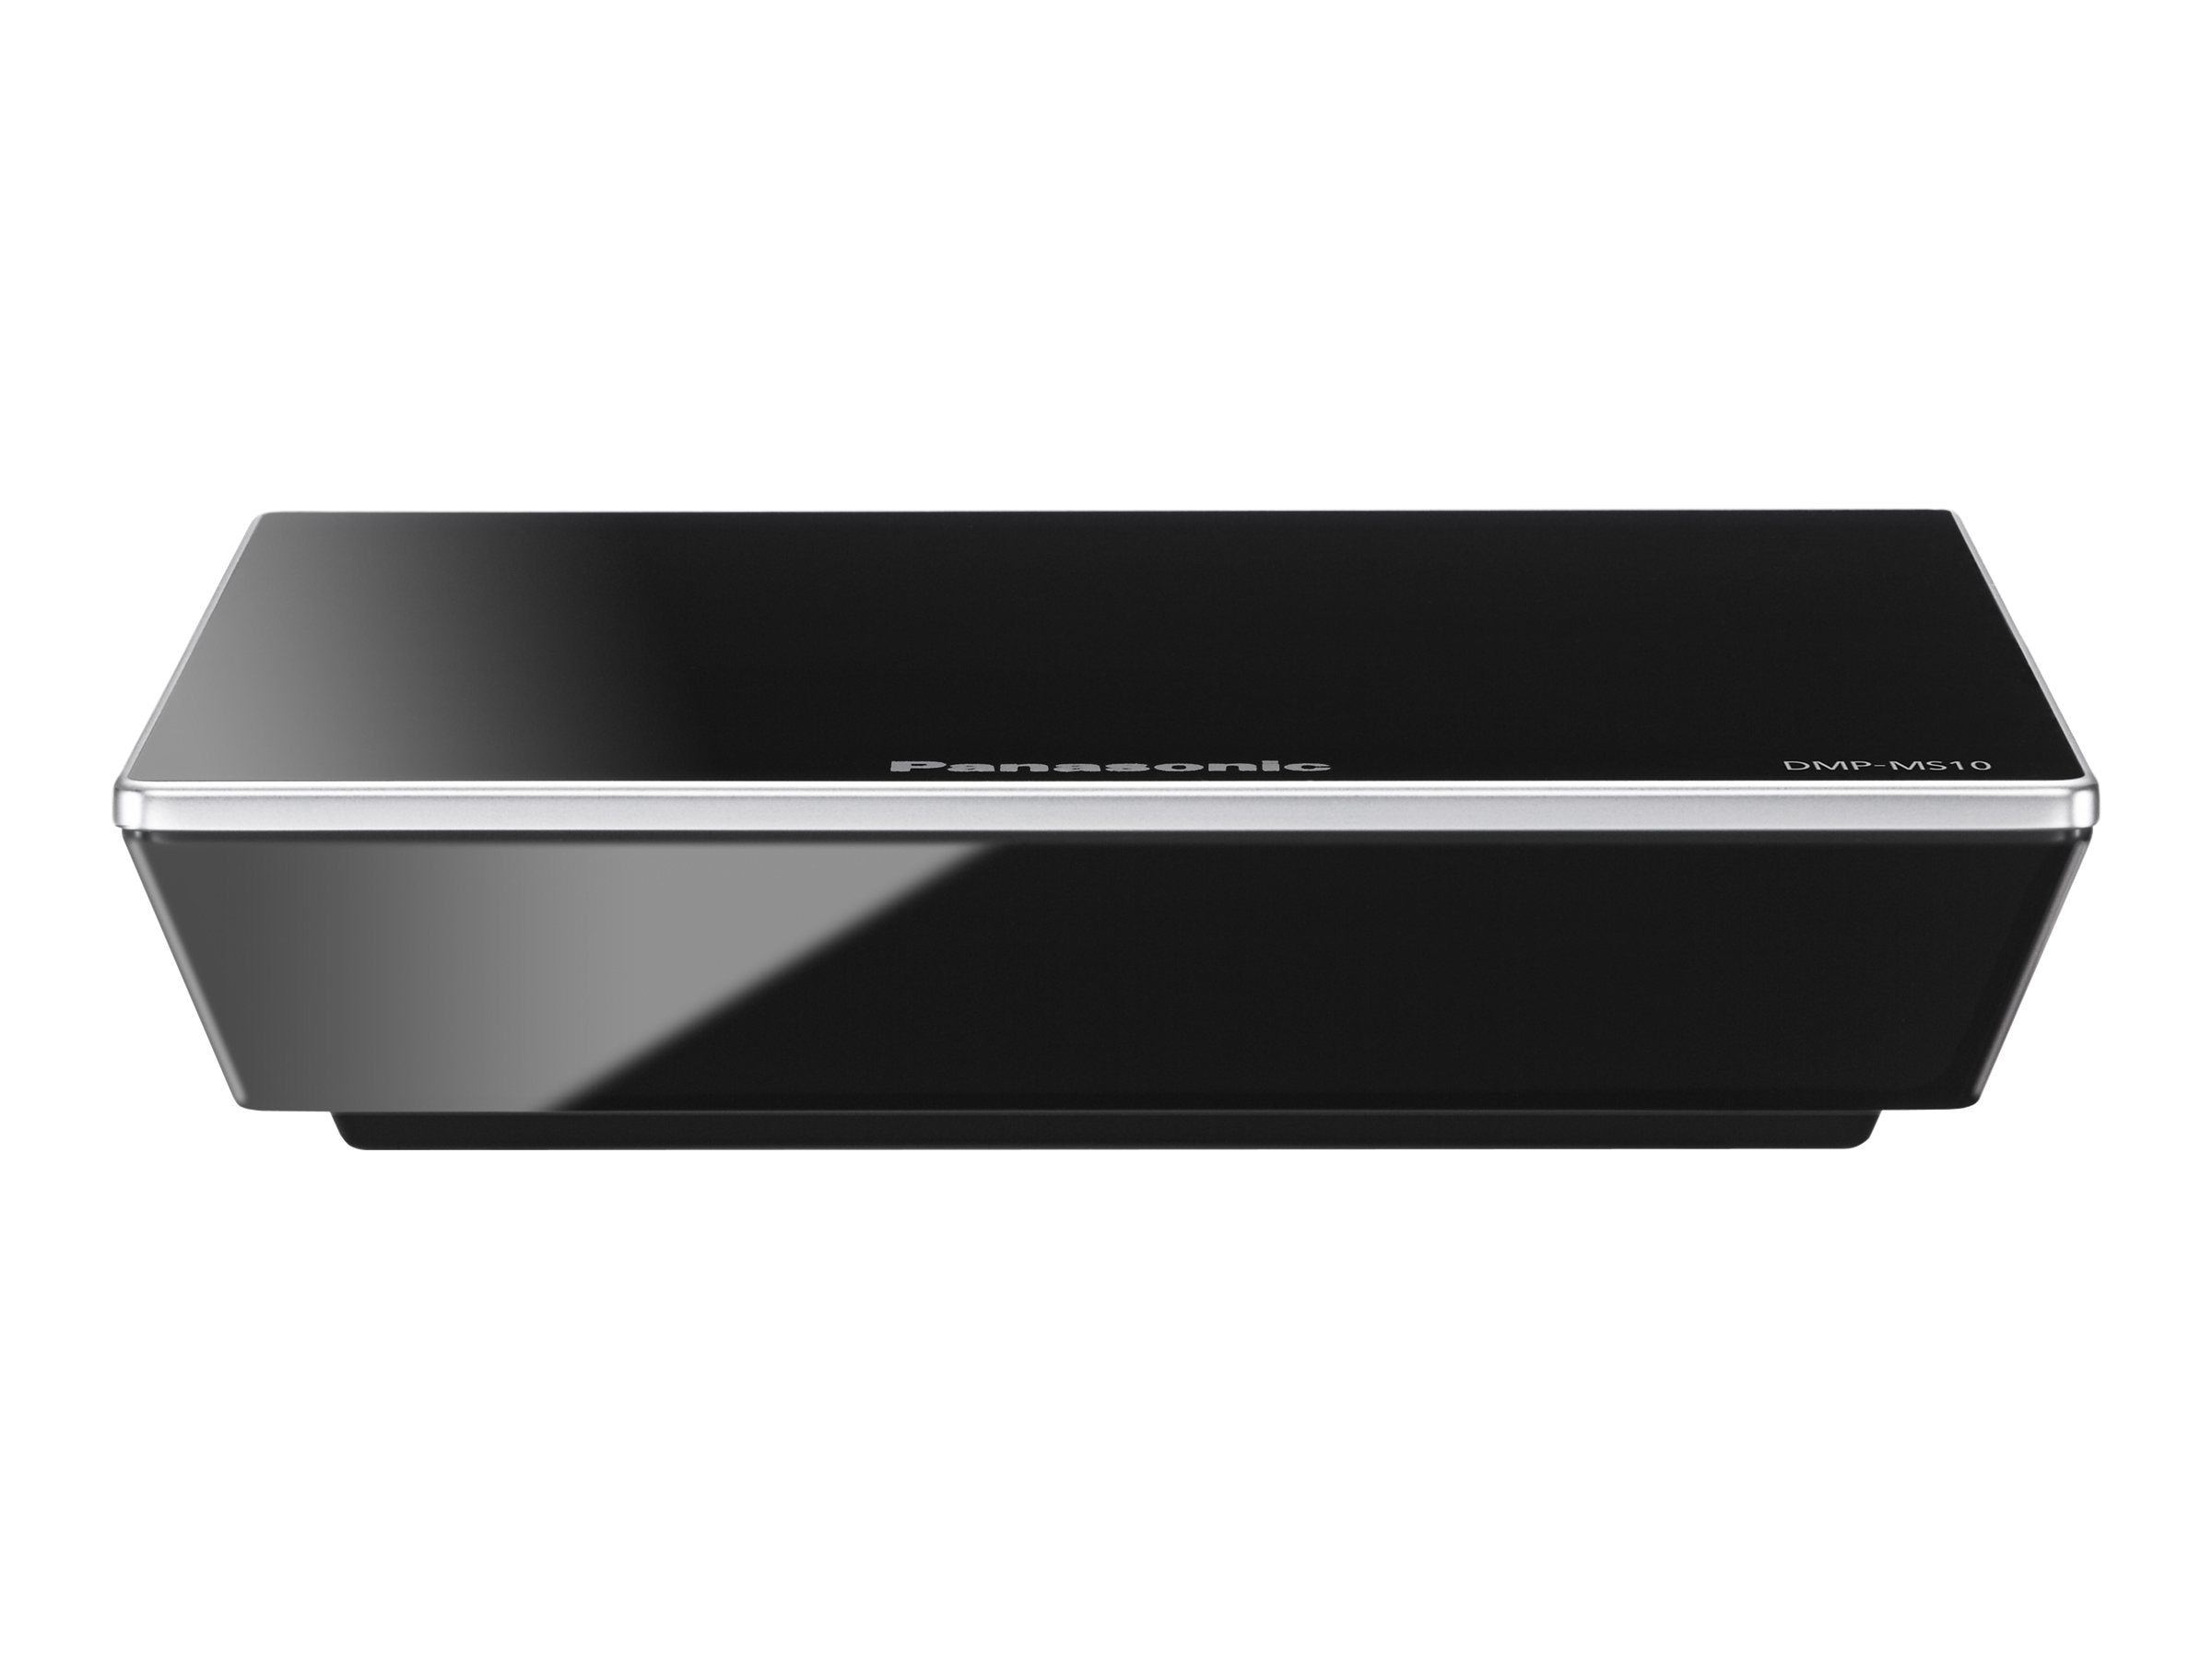 Panasonic DMP-MS10 Streaming Media Player, DMP-MS10